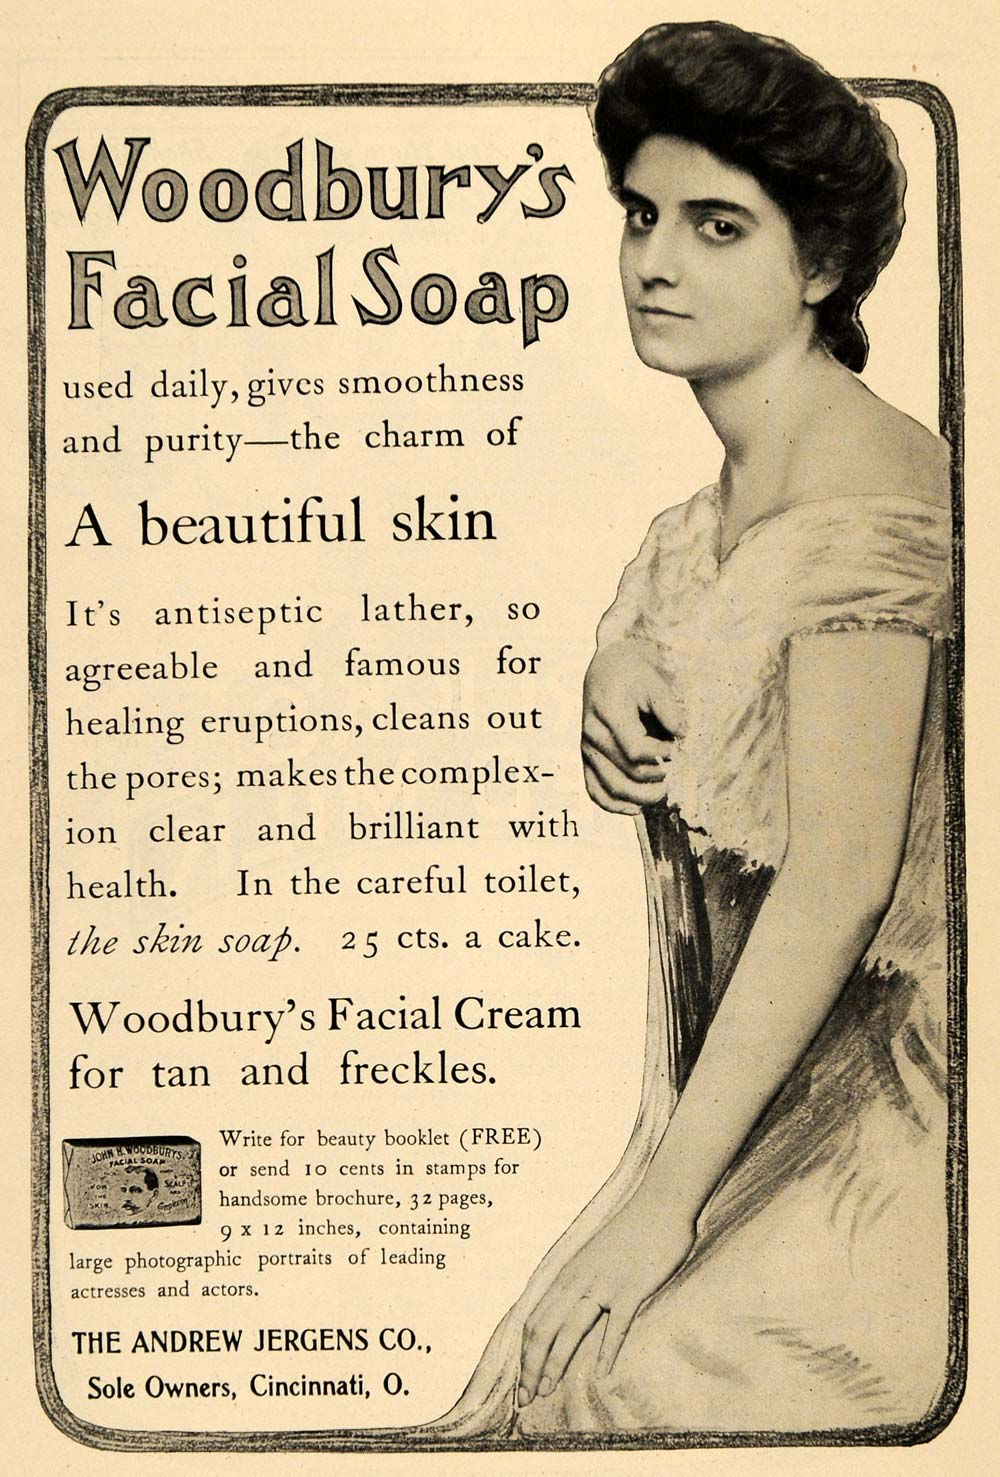 1904 Ad Andrew Jergens Company Woodbury's Facial Soap - ORIGINAL TOM3